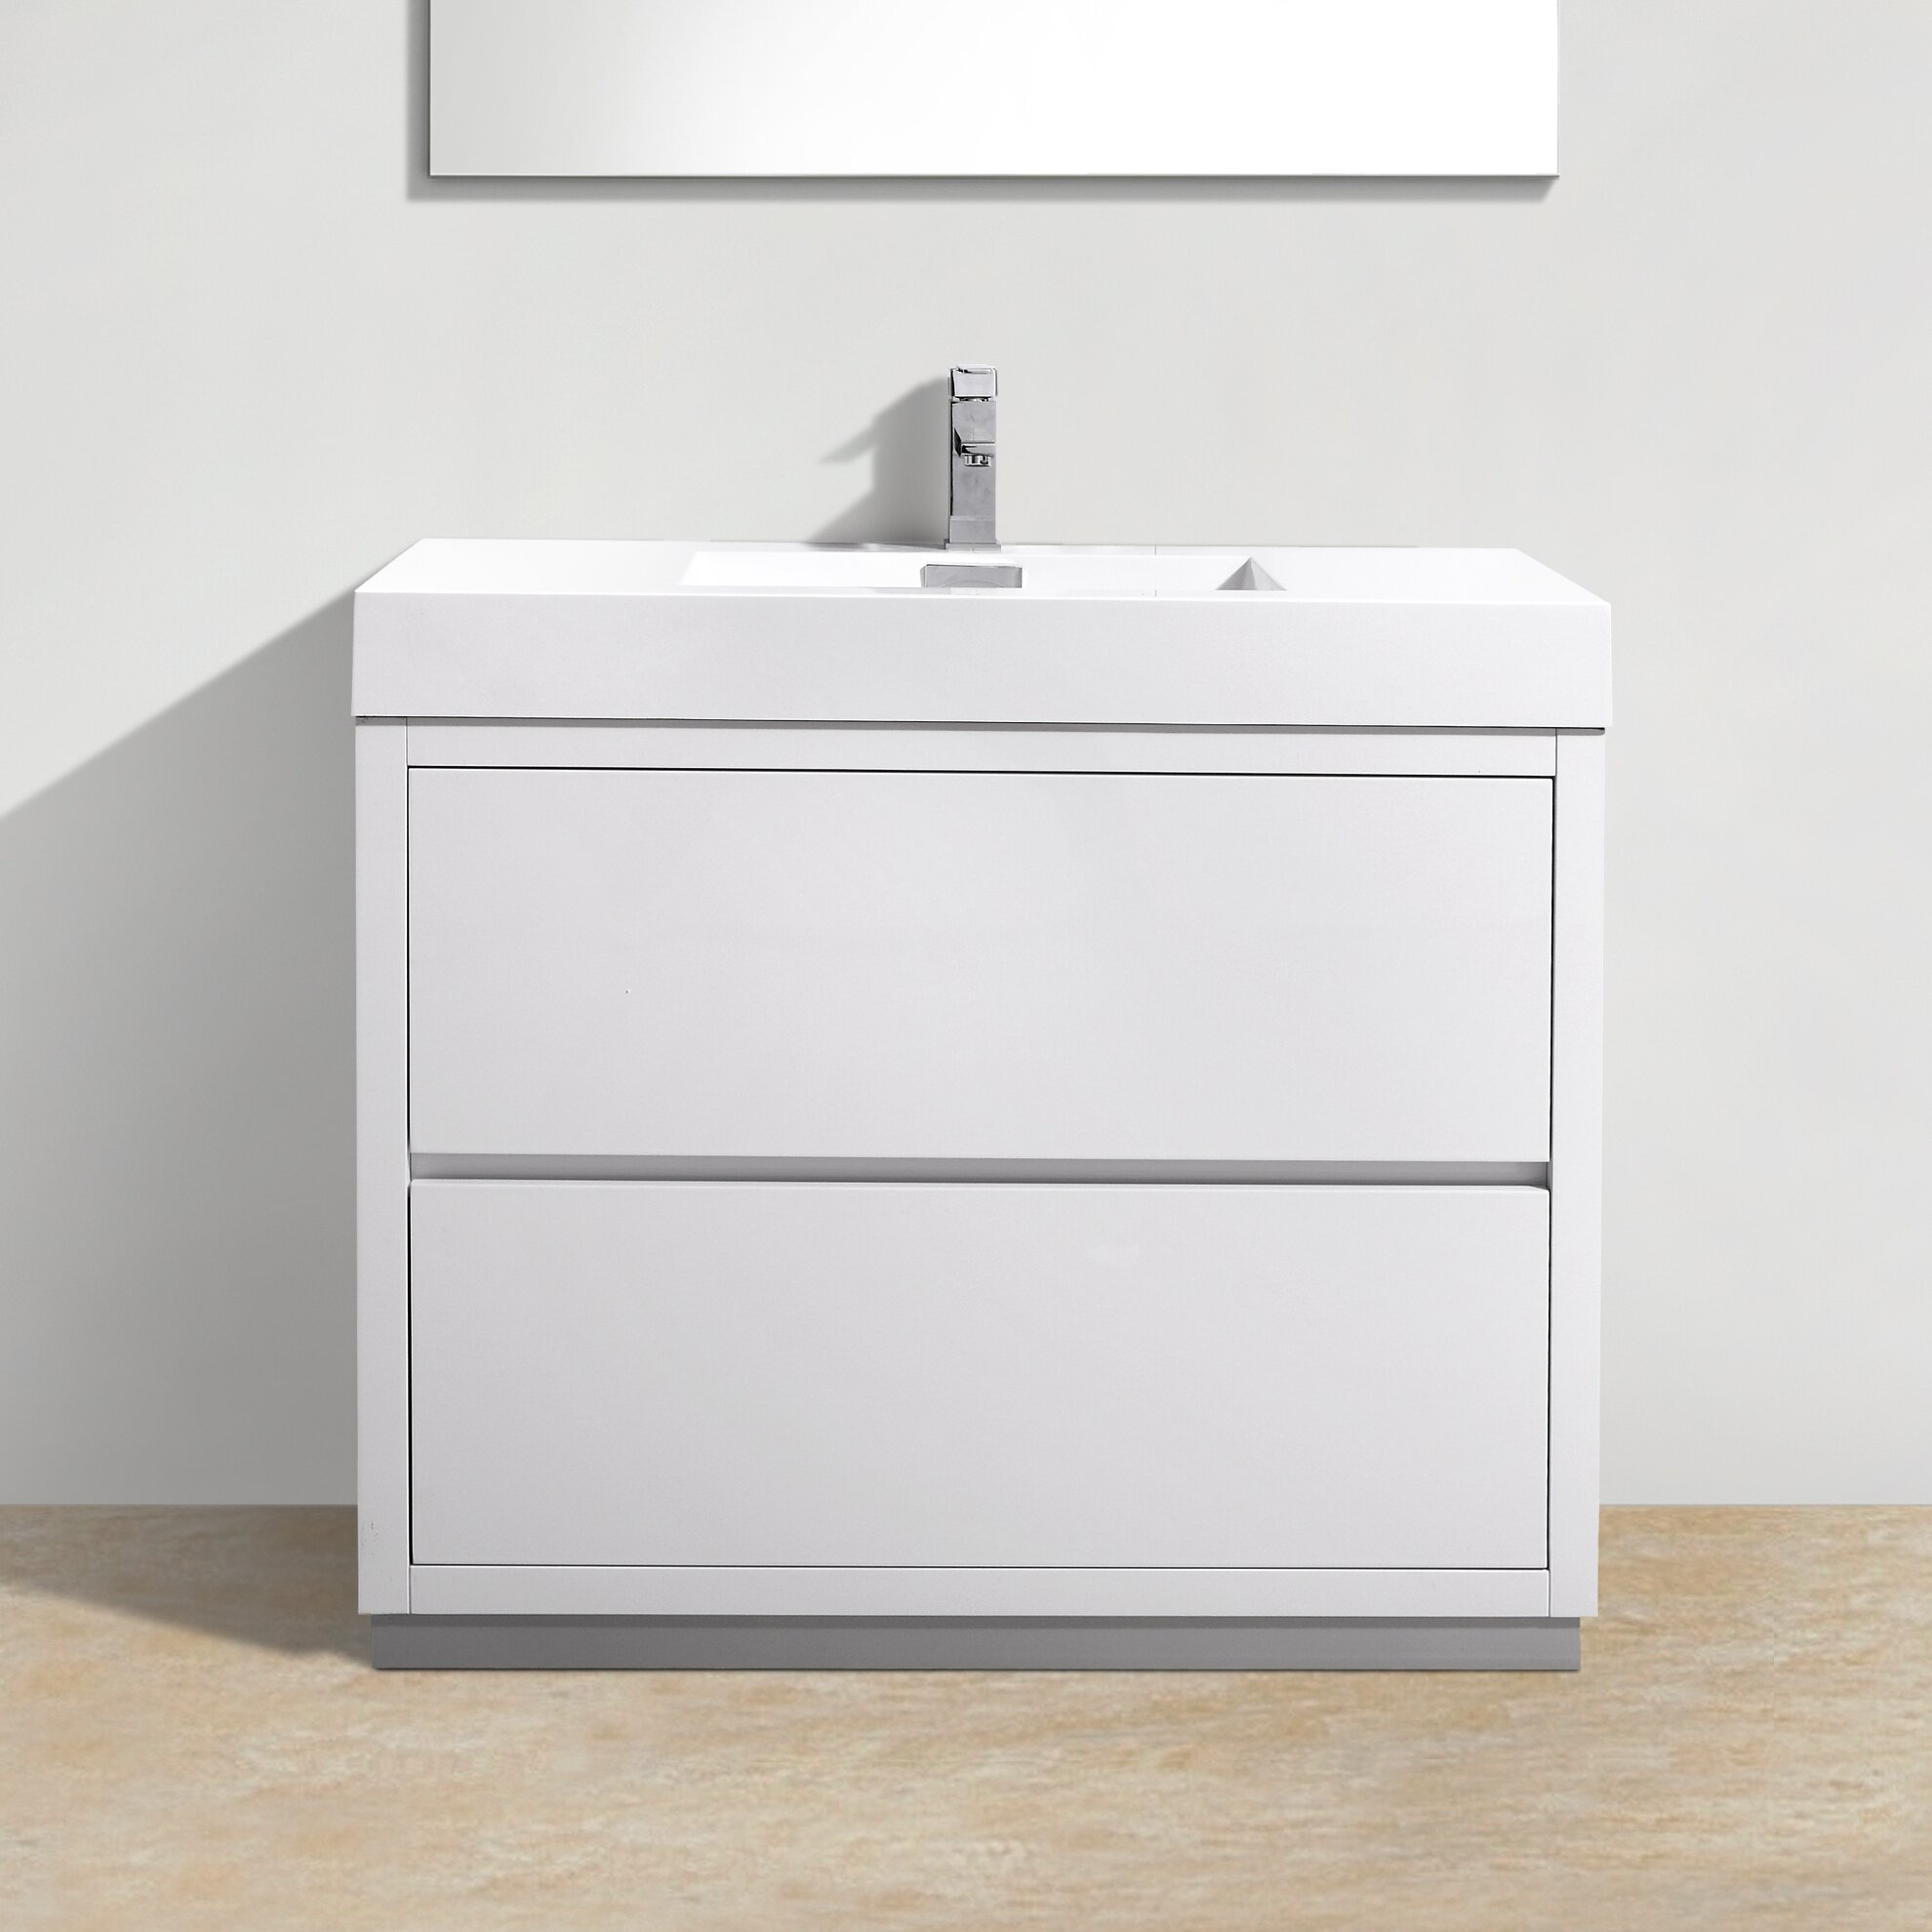 Kube Bath Bliss 40 Single Free Standing Modern Bathroom Vanity Set Reviews Wayfair